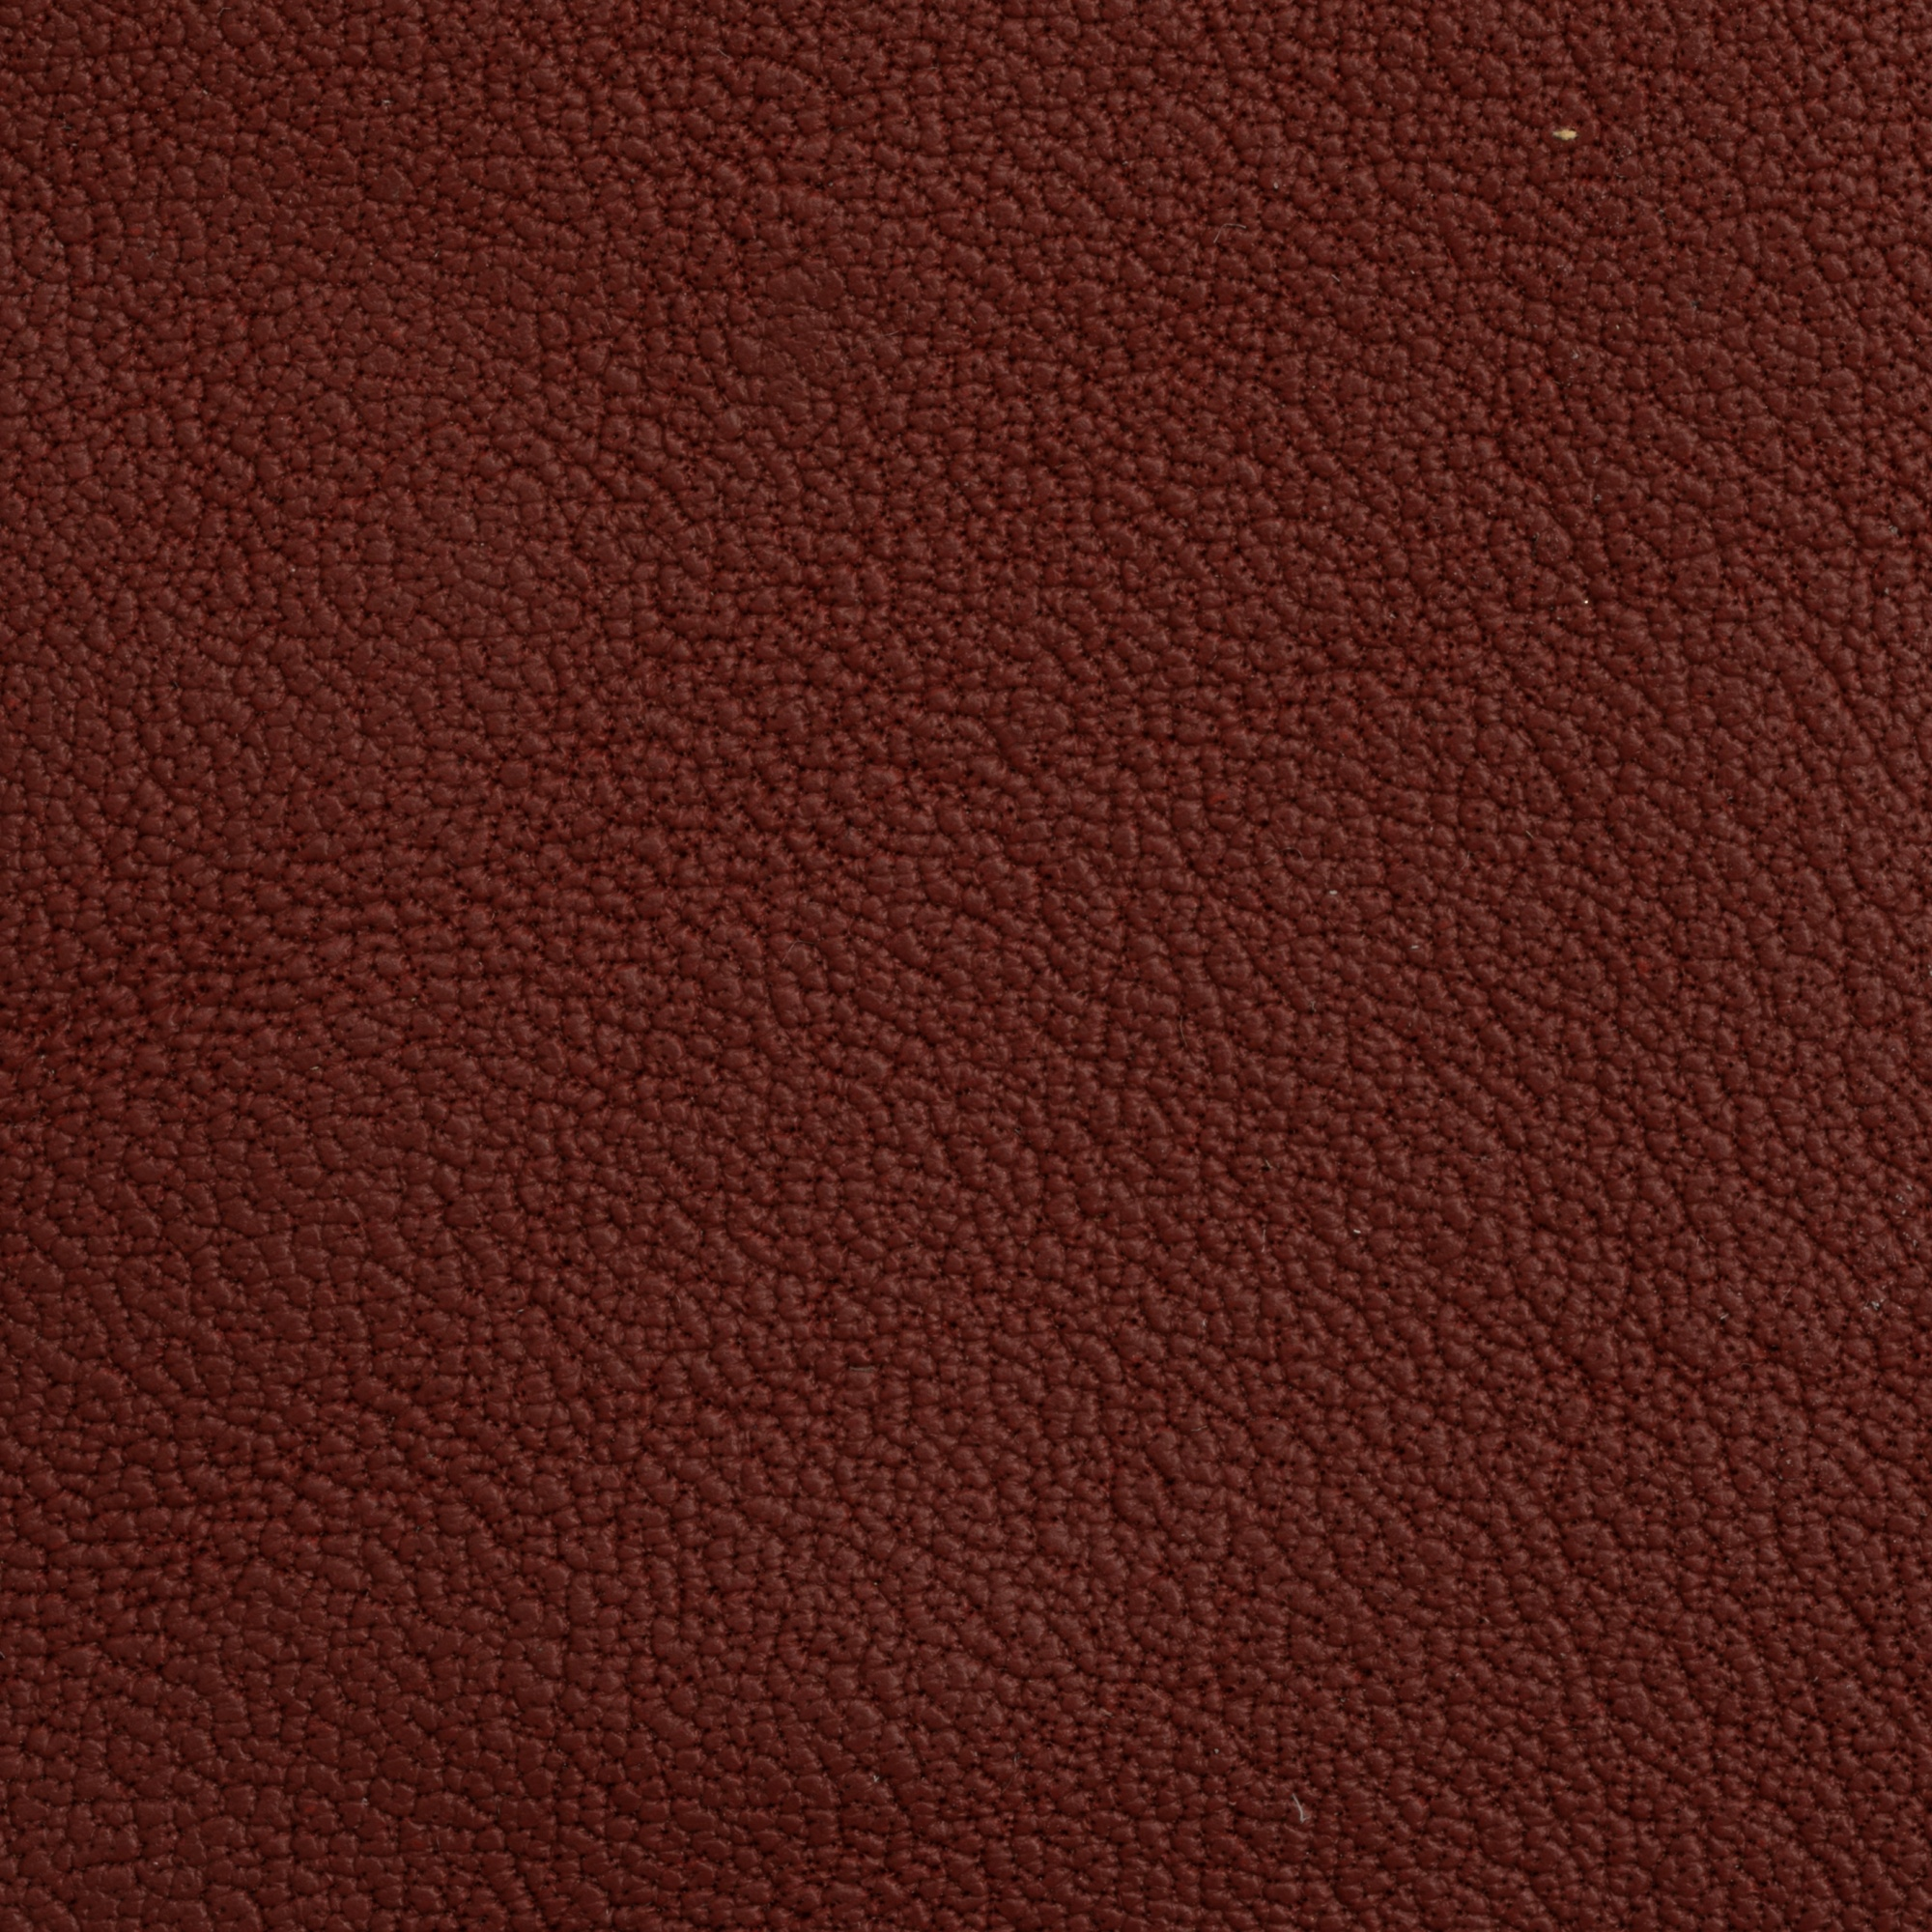 Leather texture for background